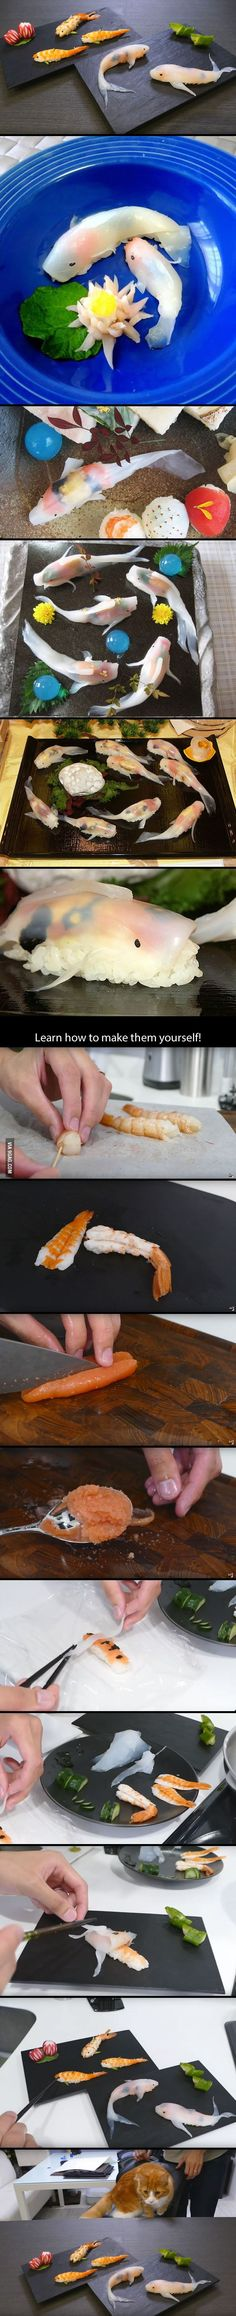 This Guy Makes Sushi That Looks Like Real-Life Koi In A Few Simple Steps - 9GAG